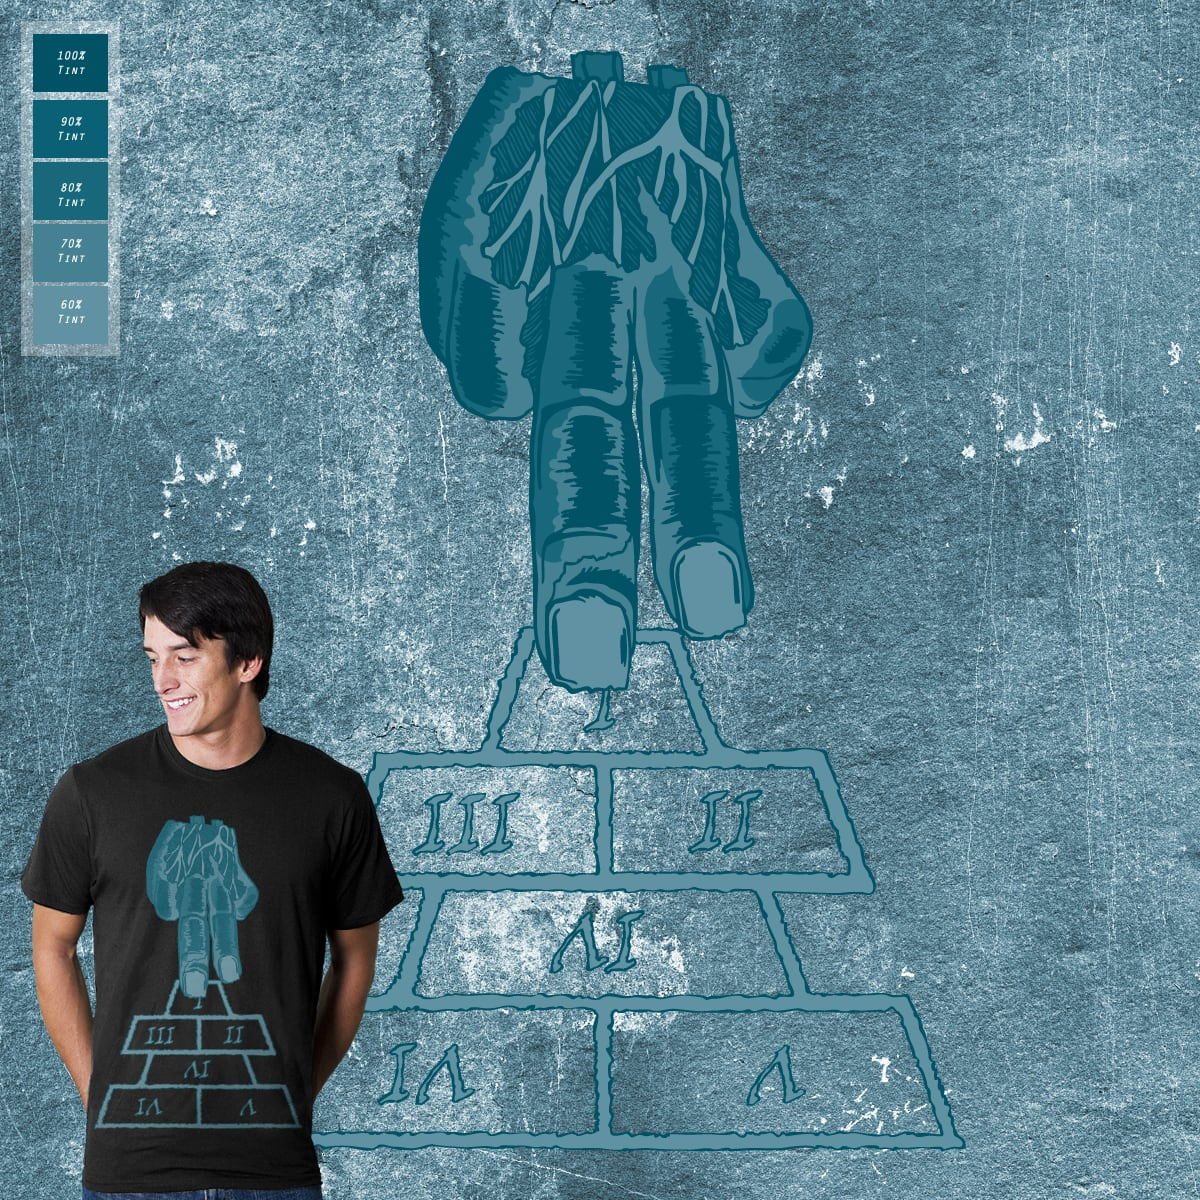 Hopscotch by Whipbot on Threadless